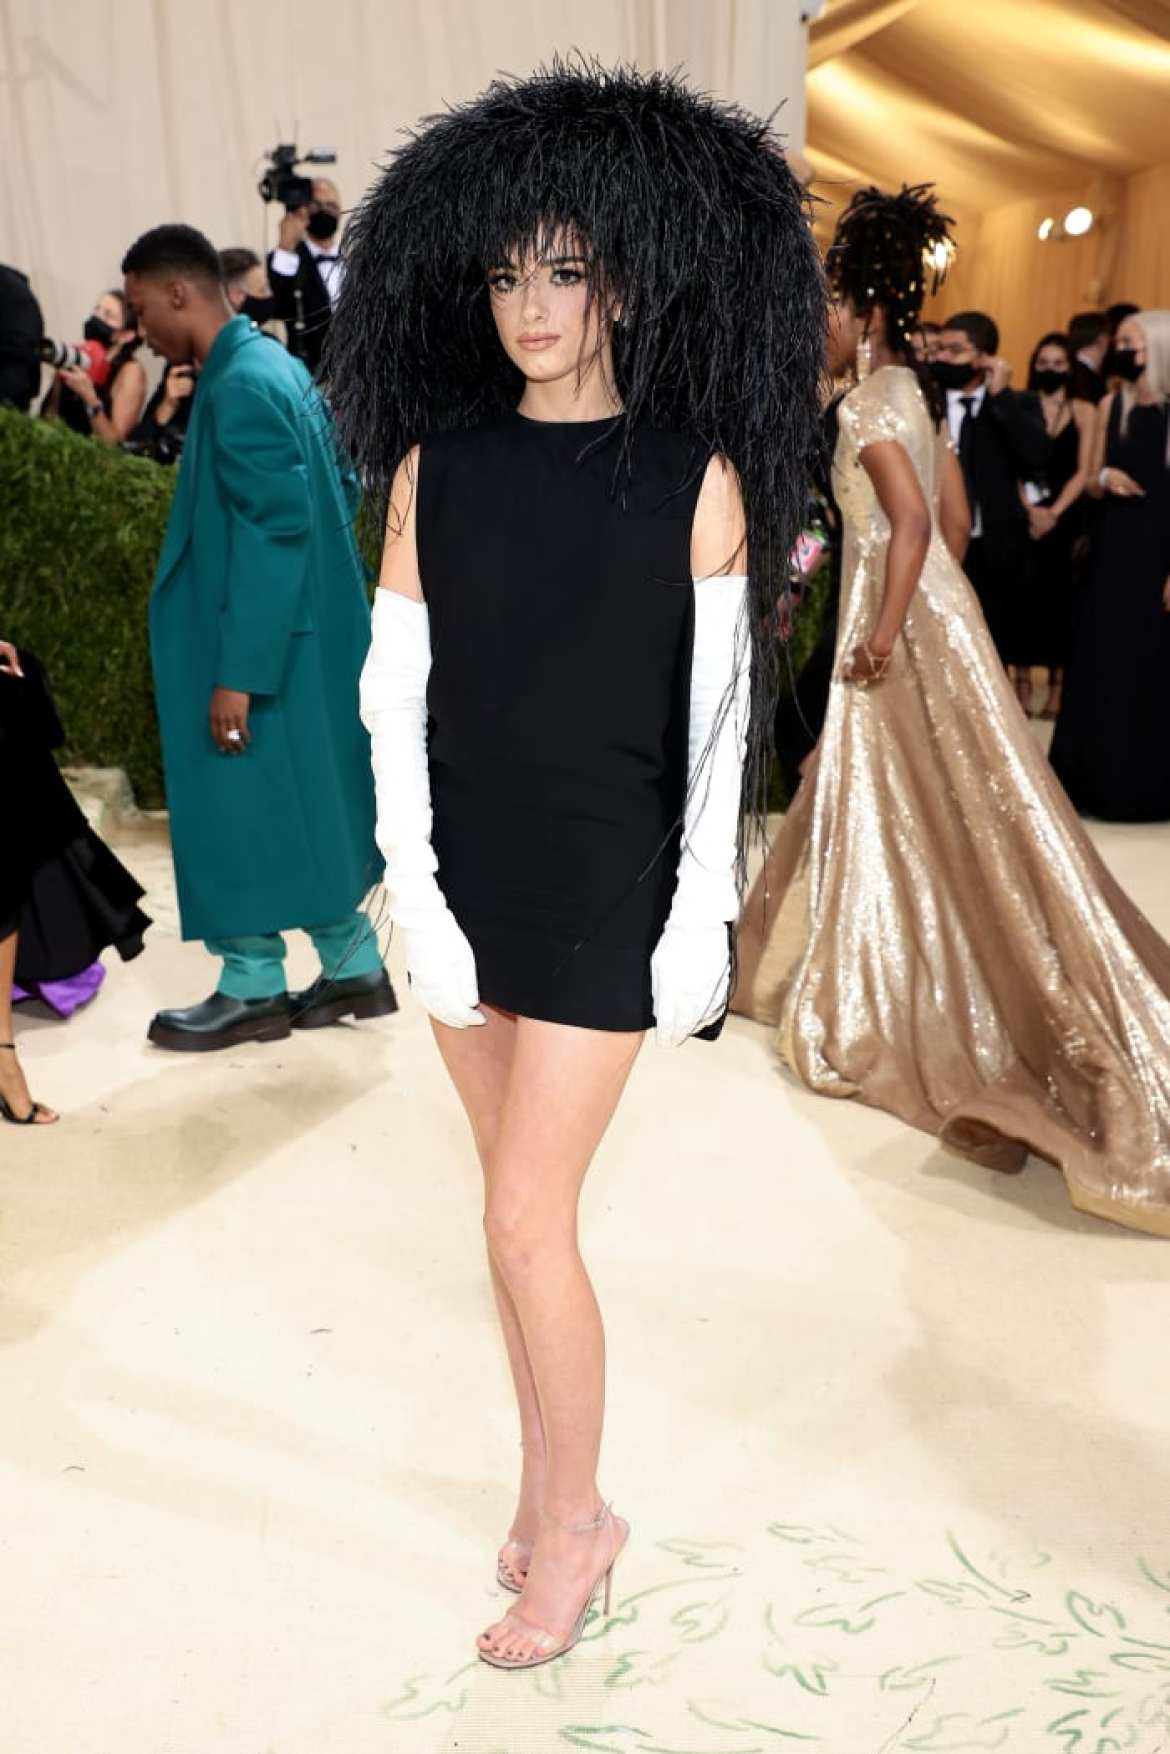 Dixie D'Amelio at the 2021 Met Gala in Valentino.